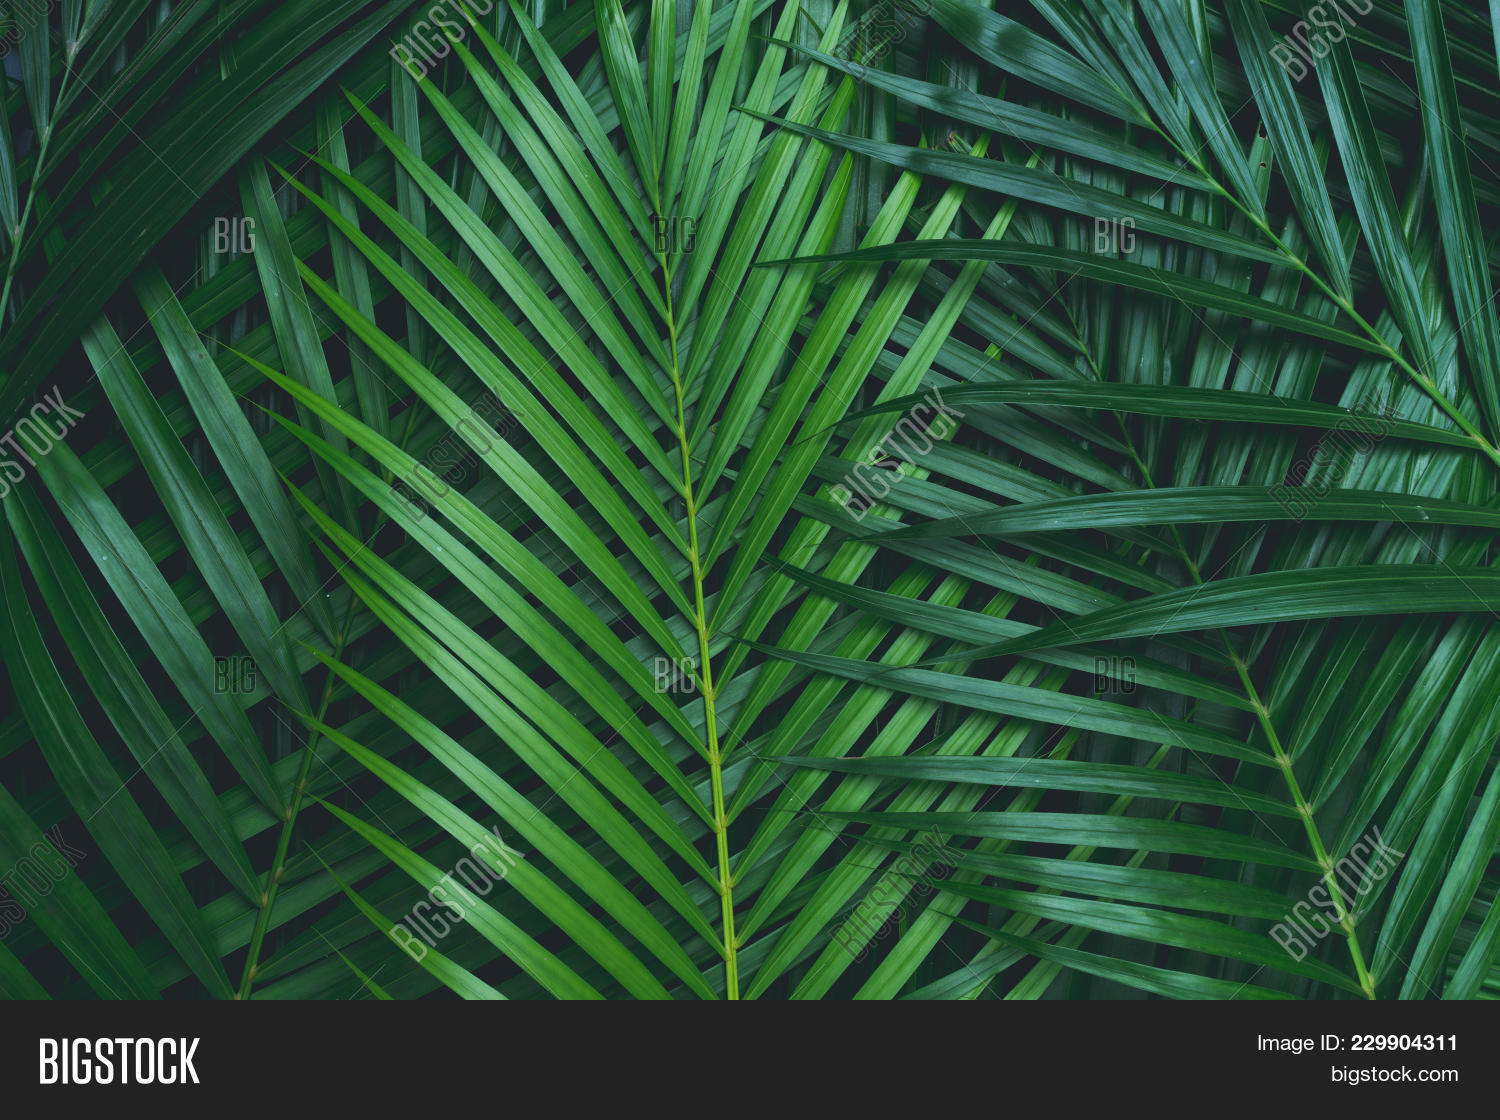 palm leaves coconut image photo free trial bigstock